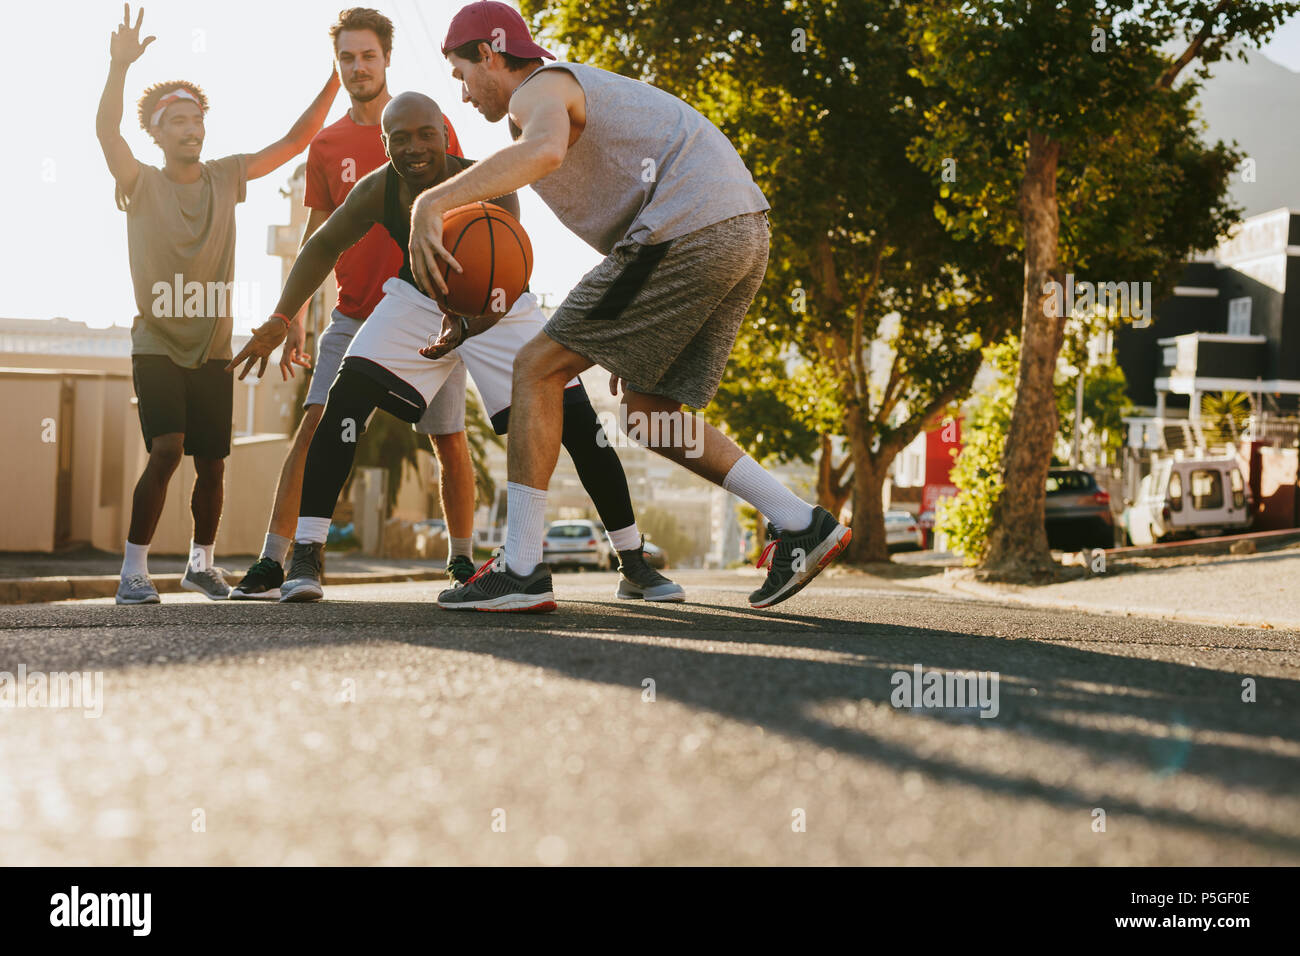 Men playing basketball game on a sunny day on an empty street. Men practicing basketball dribbling skills on street. Stock Photo